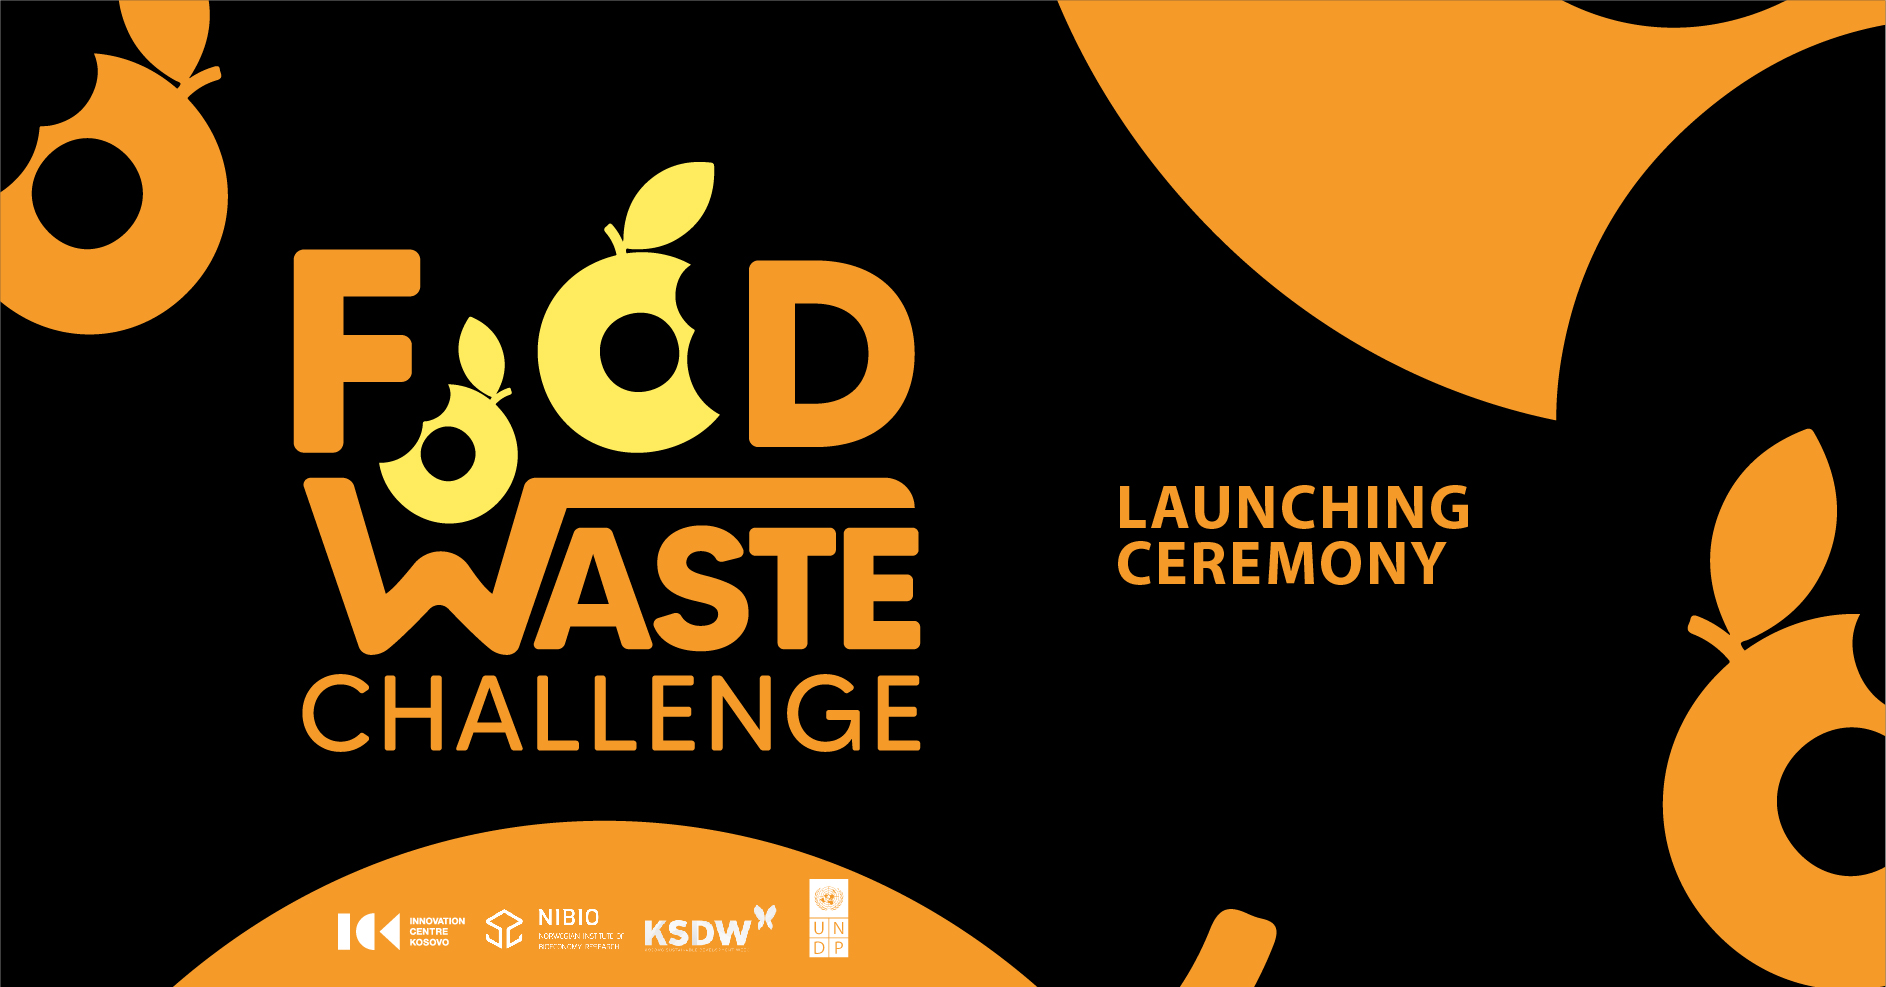 Food Waste Challenge 2021 - Launching Ceremony